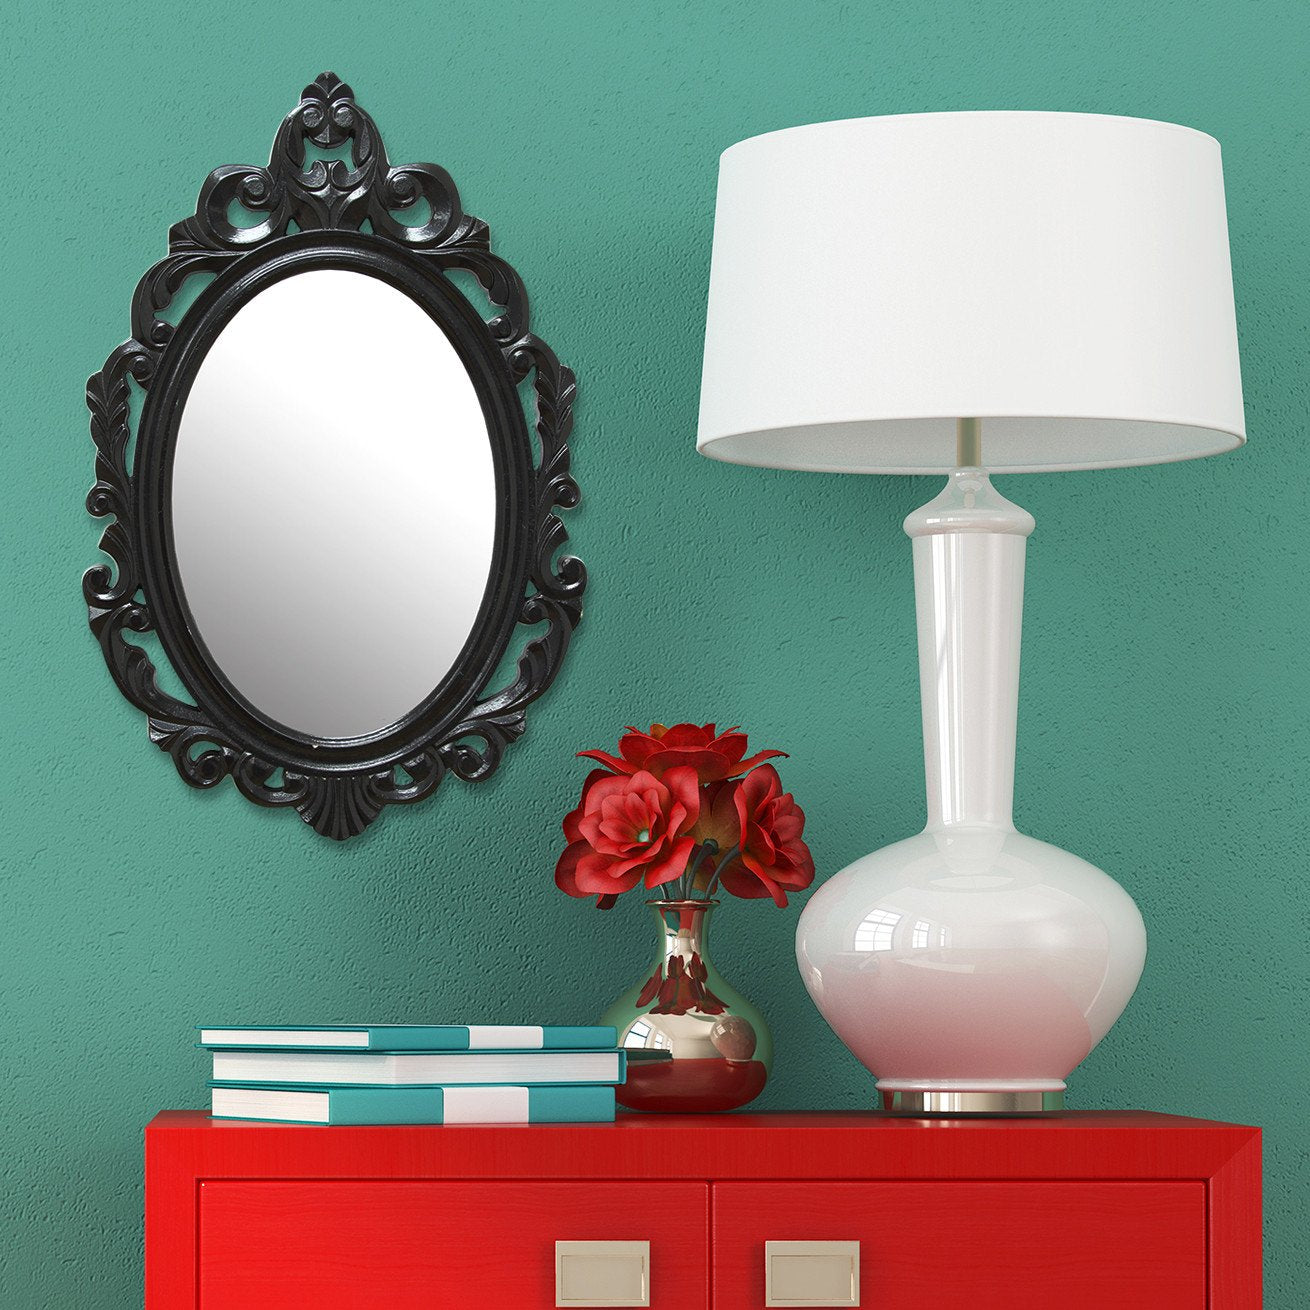 Glossy Black Oval Glass Wall Mirror